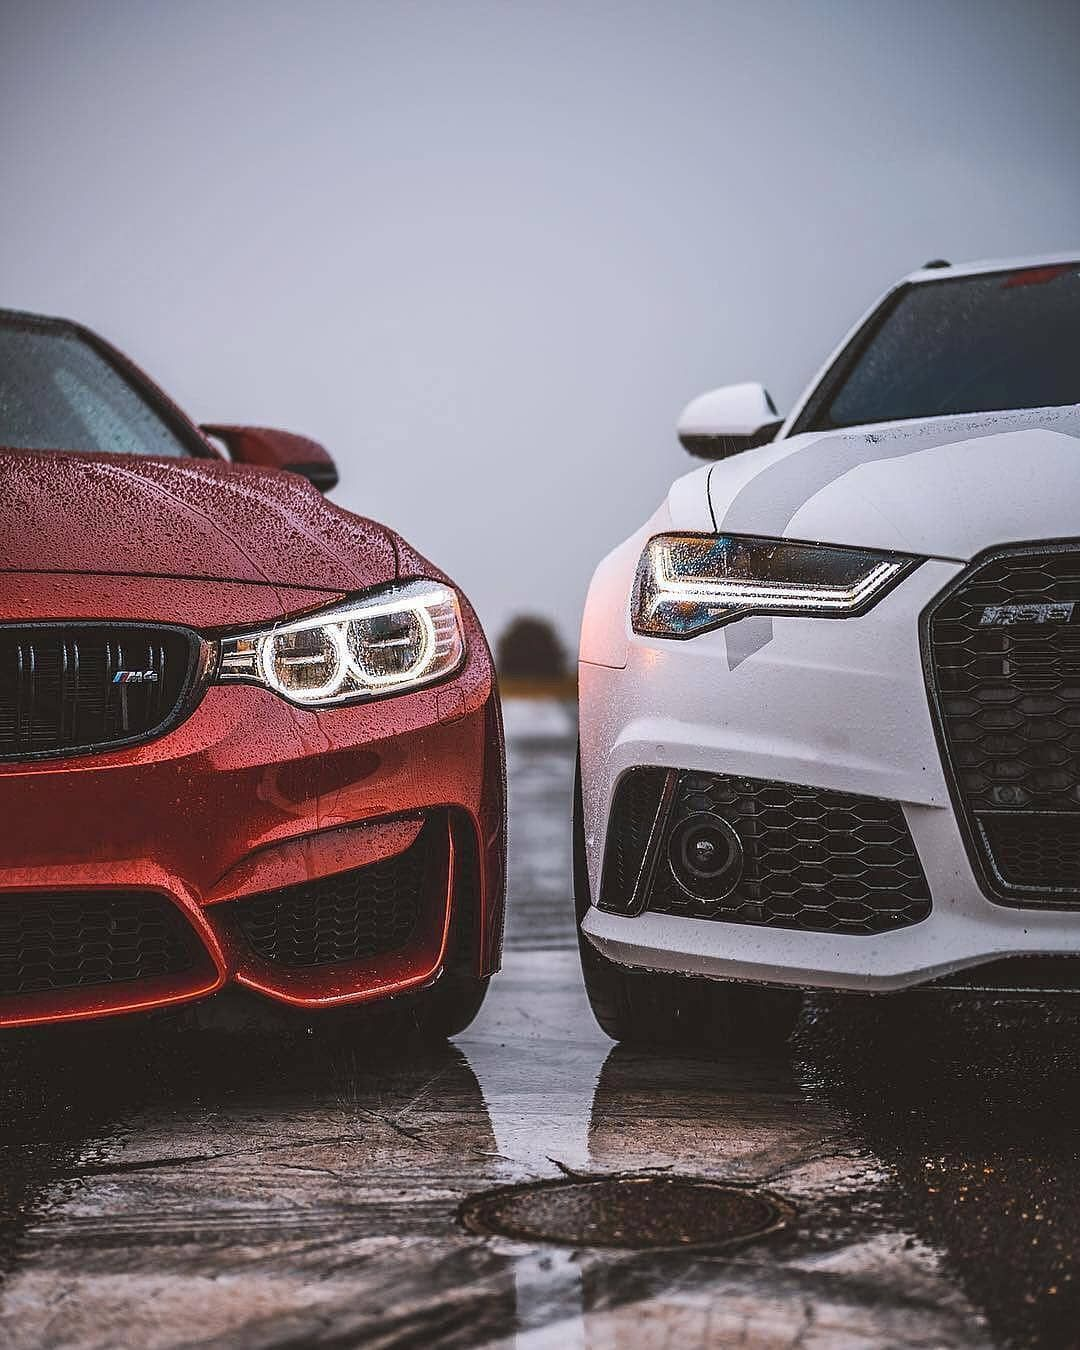 Bmw Vs Audi Which Side Do You Choose Luxuryspeak Bmw M4 Audi Rs6 Class Racing Drift Red White Fourrings Sign Love Front Audi Rs6 Bmw M4 Bmw